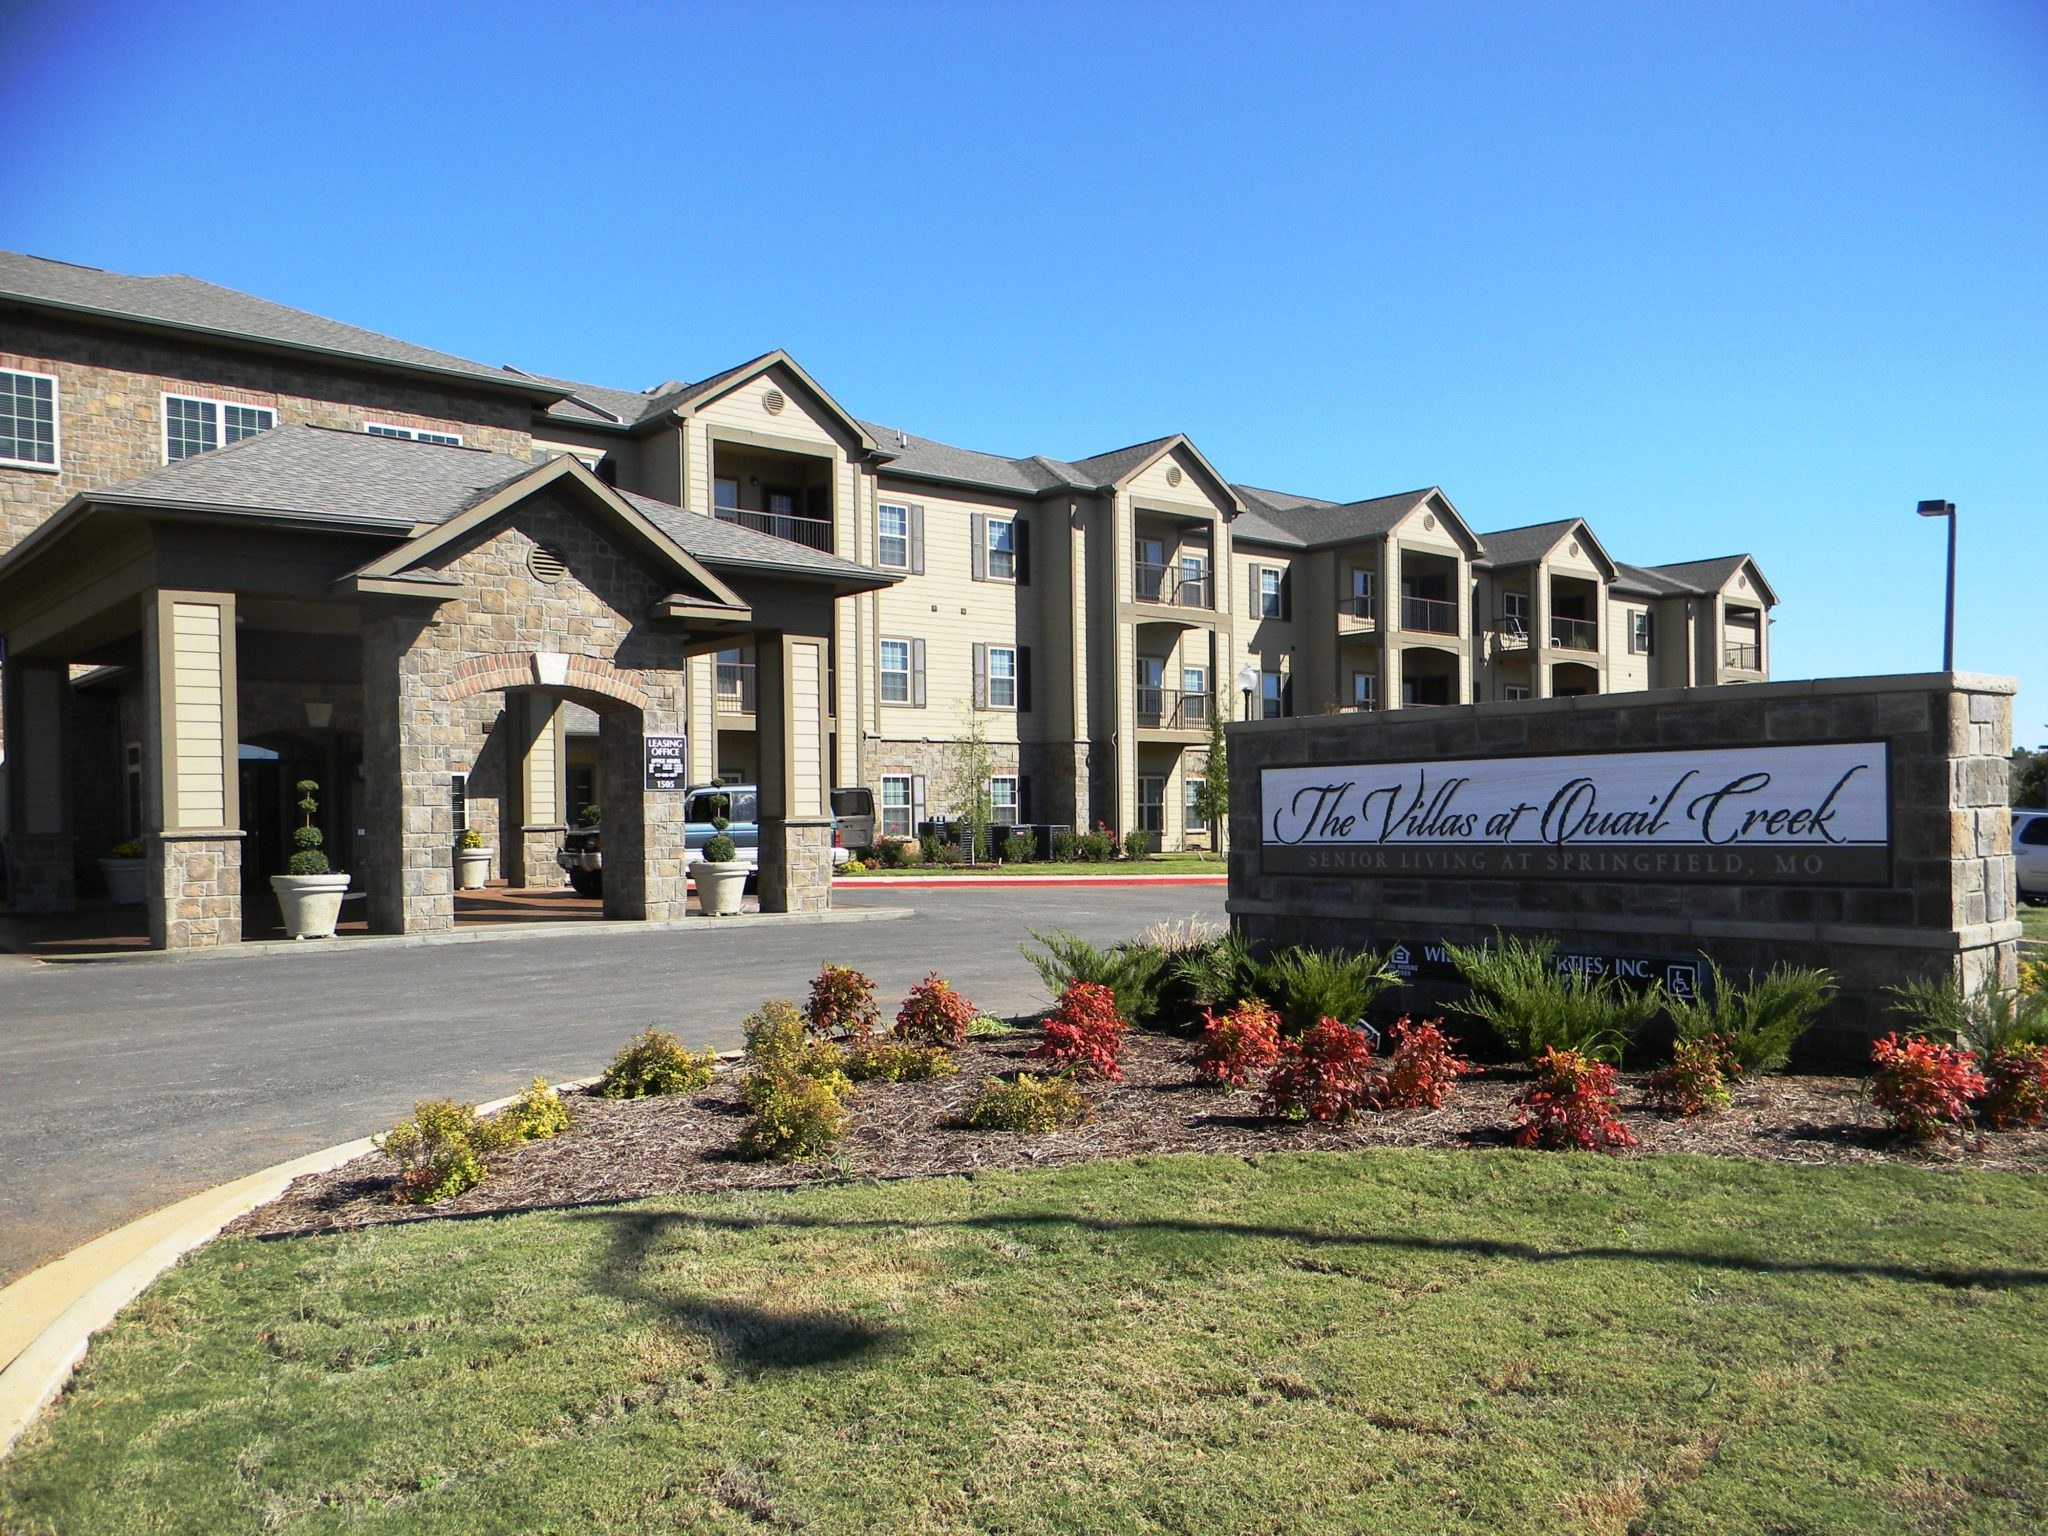 Villas at Quail Creek entrance sign